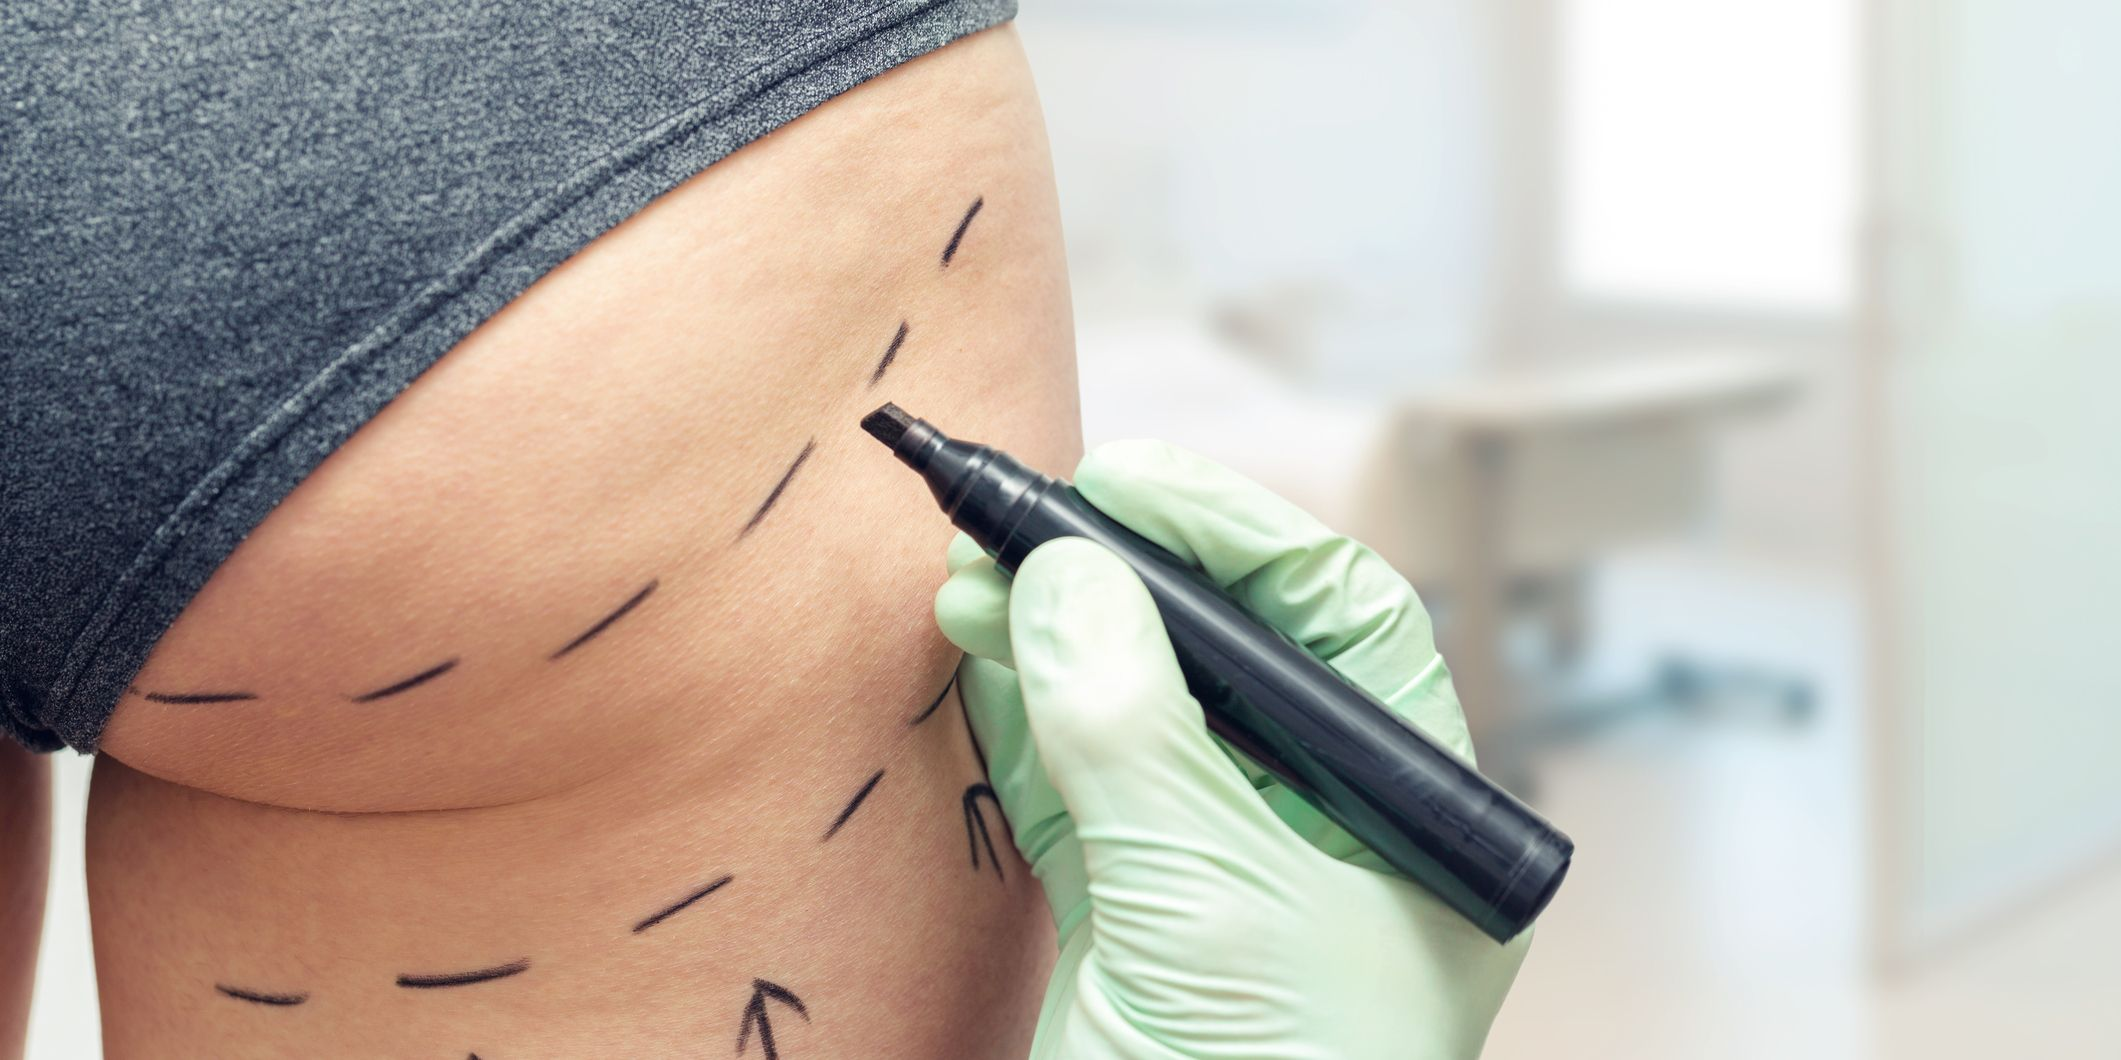 A second British woman has died as a result of cosmetic surgery on her bum